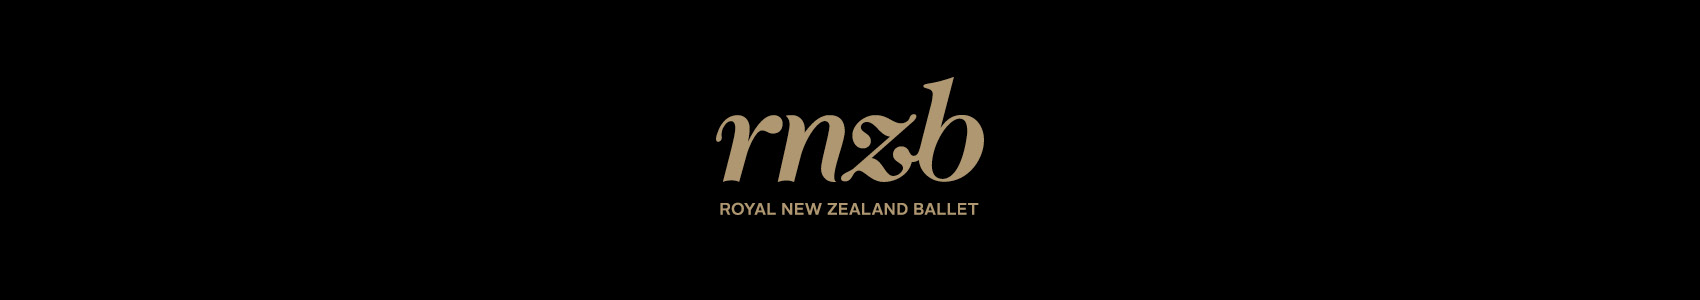 The Royal New Zealand Ballet